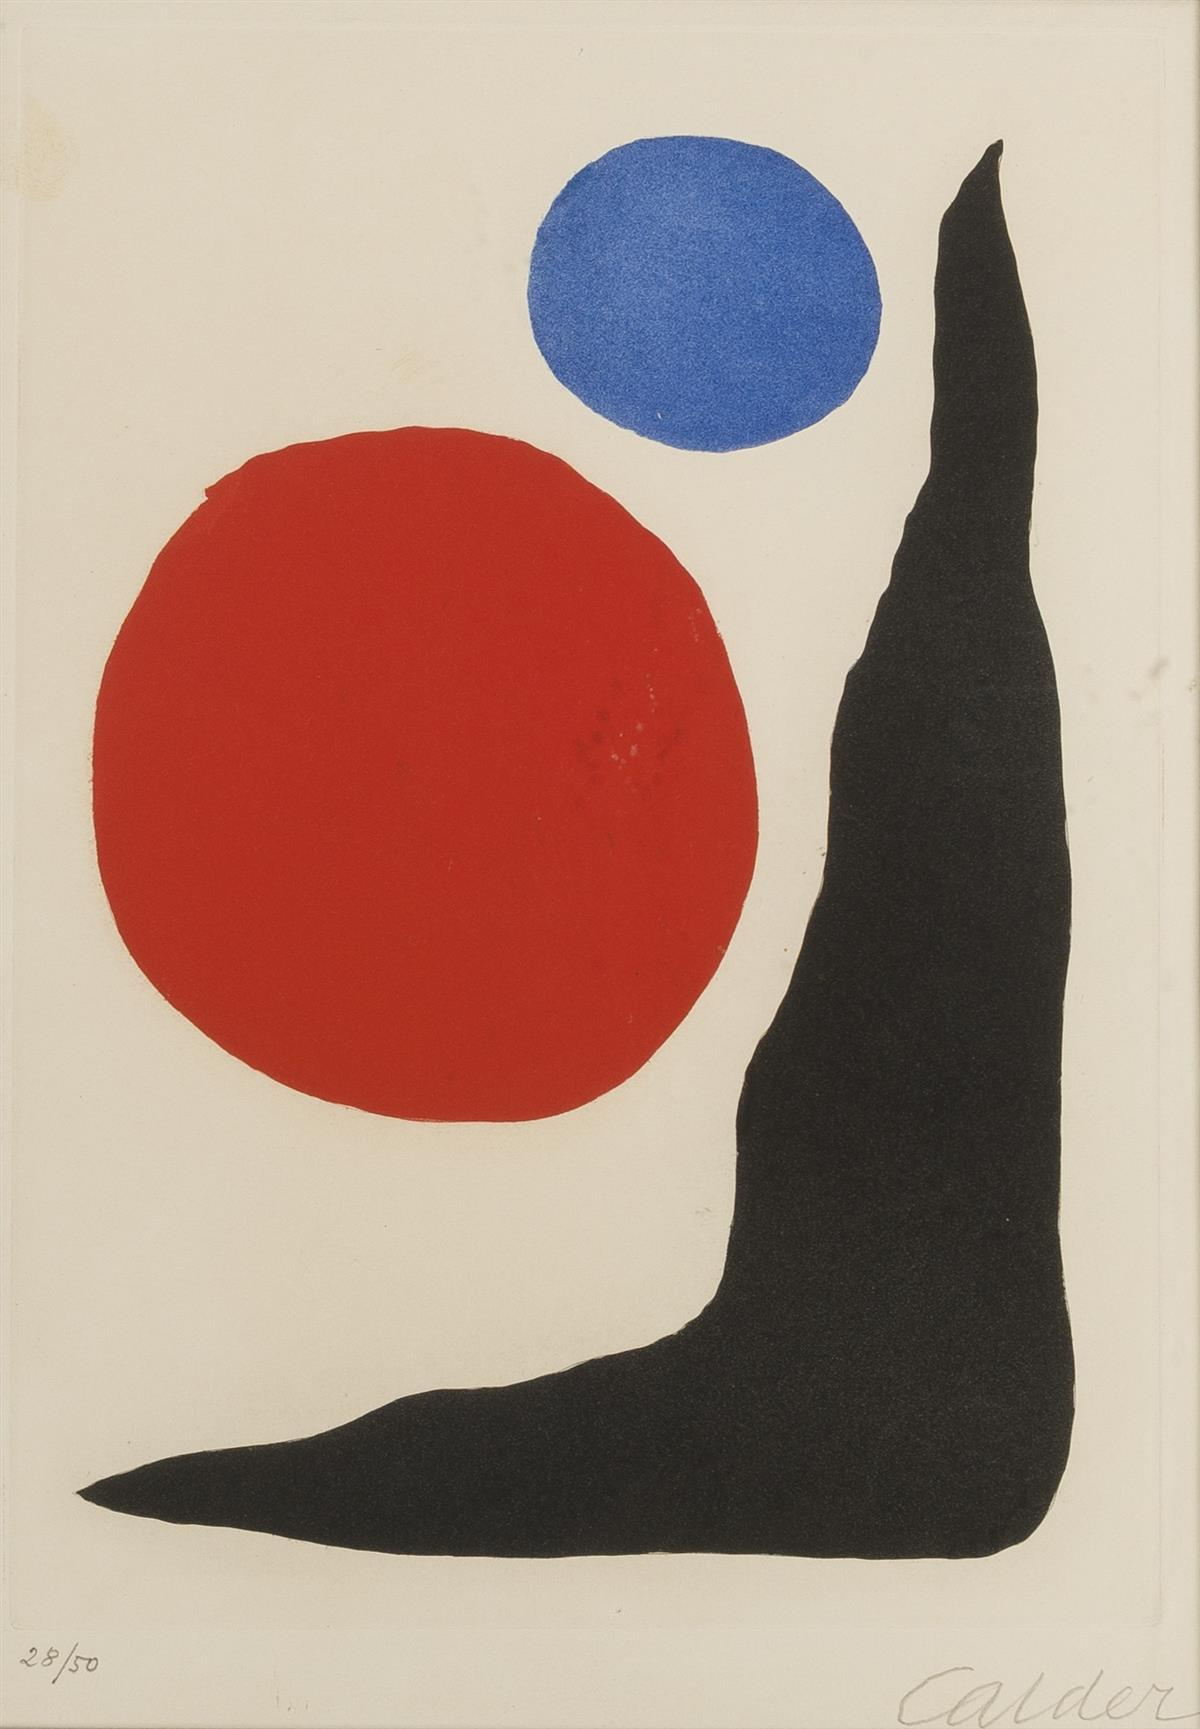 """Alexander Calder, (1898-1976 New York, NY), Untitled composition, 1967, Color etching on paper, Plate: 13.5"""" H x 9.5"""" W"""